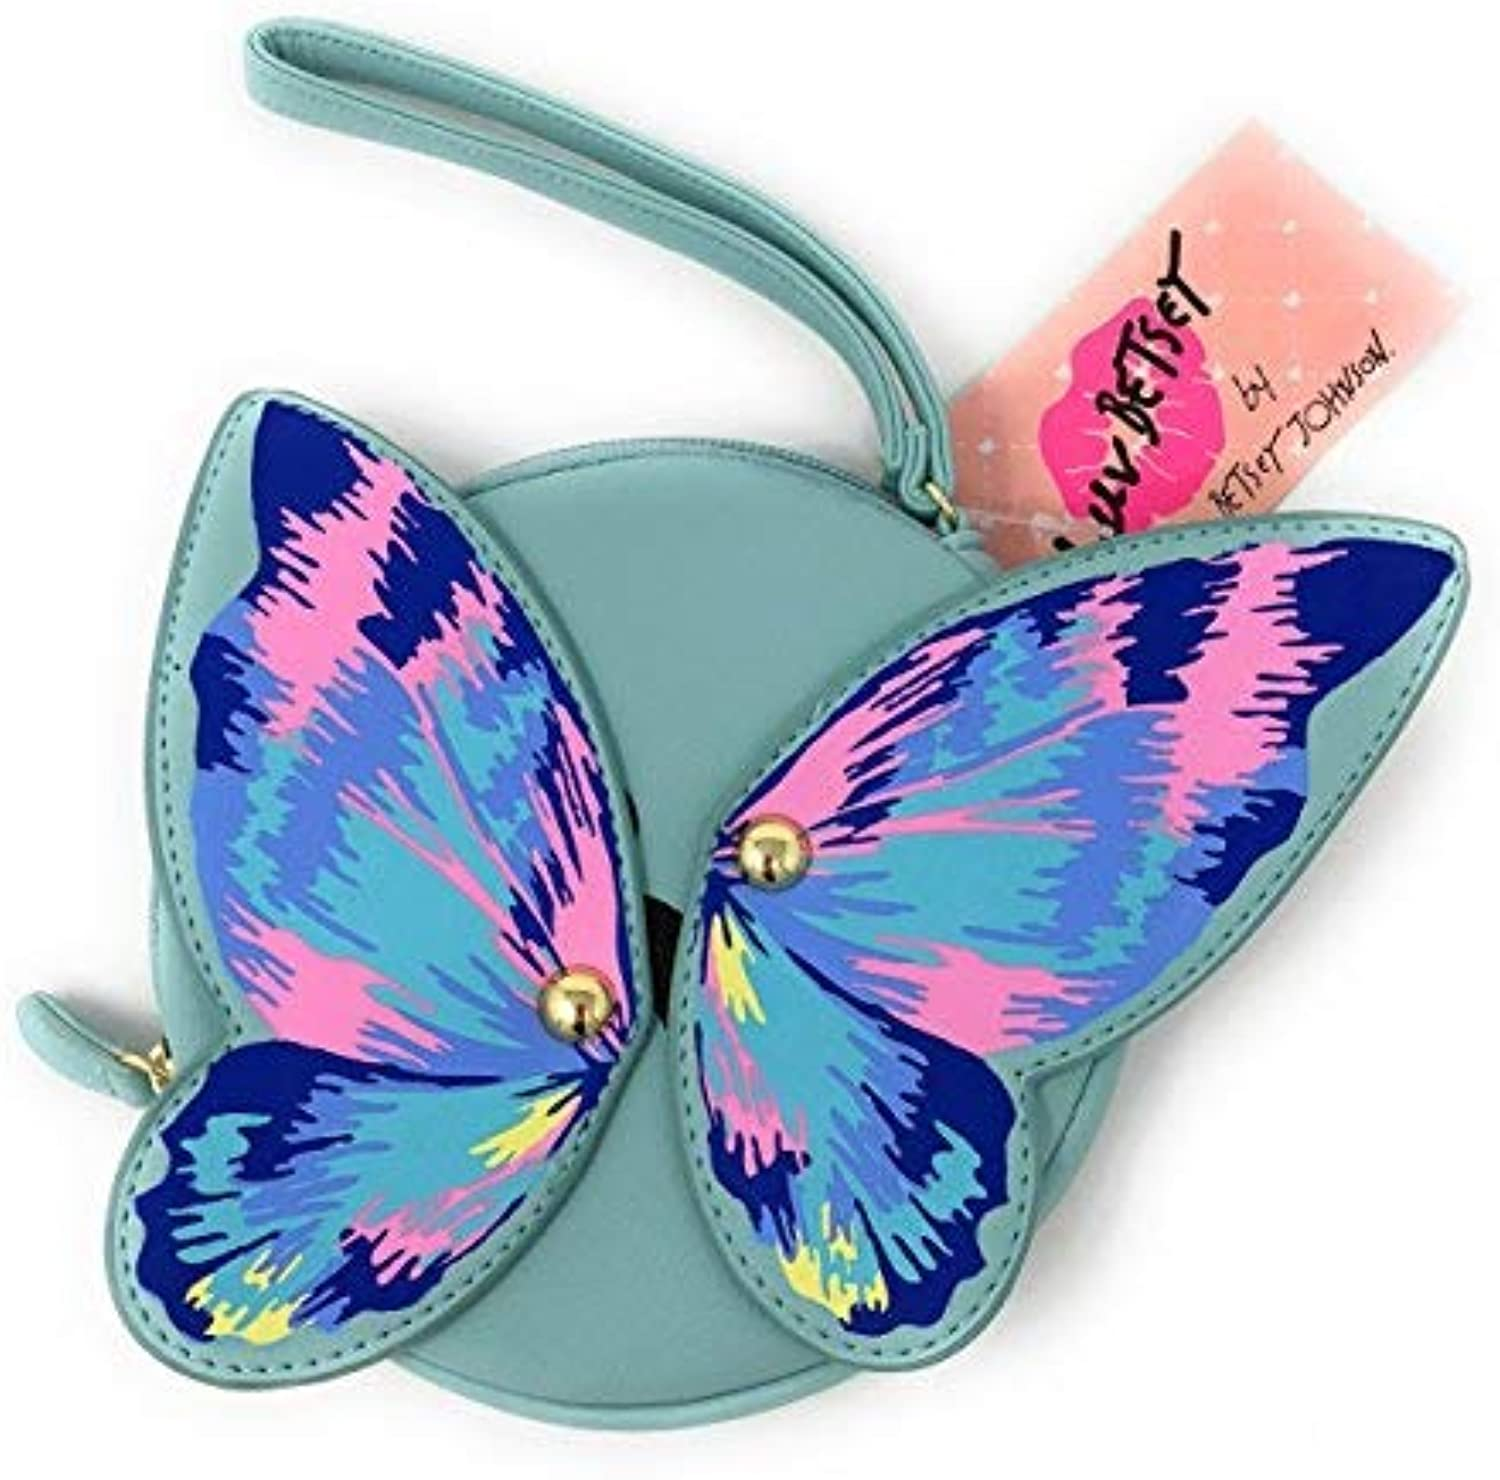 Betsey Johnson Luv Betsey Aqua Butterfly Coin Purse